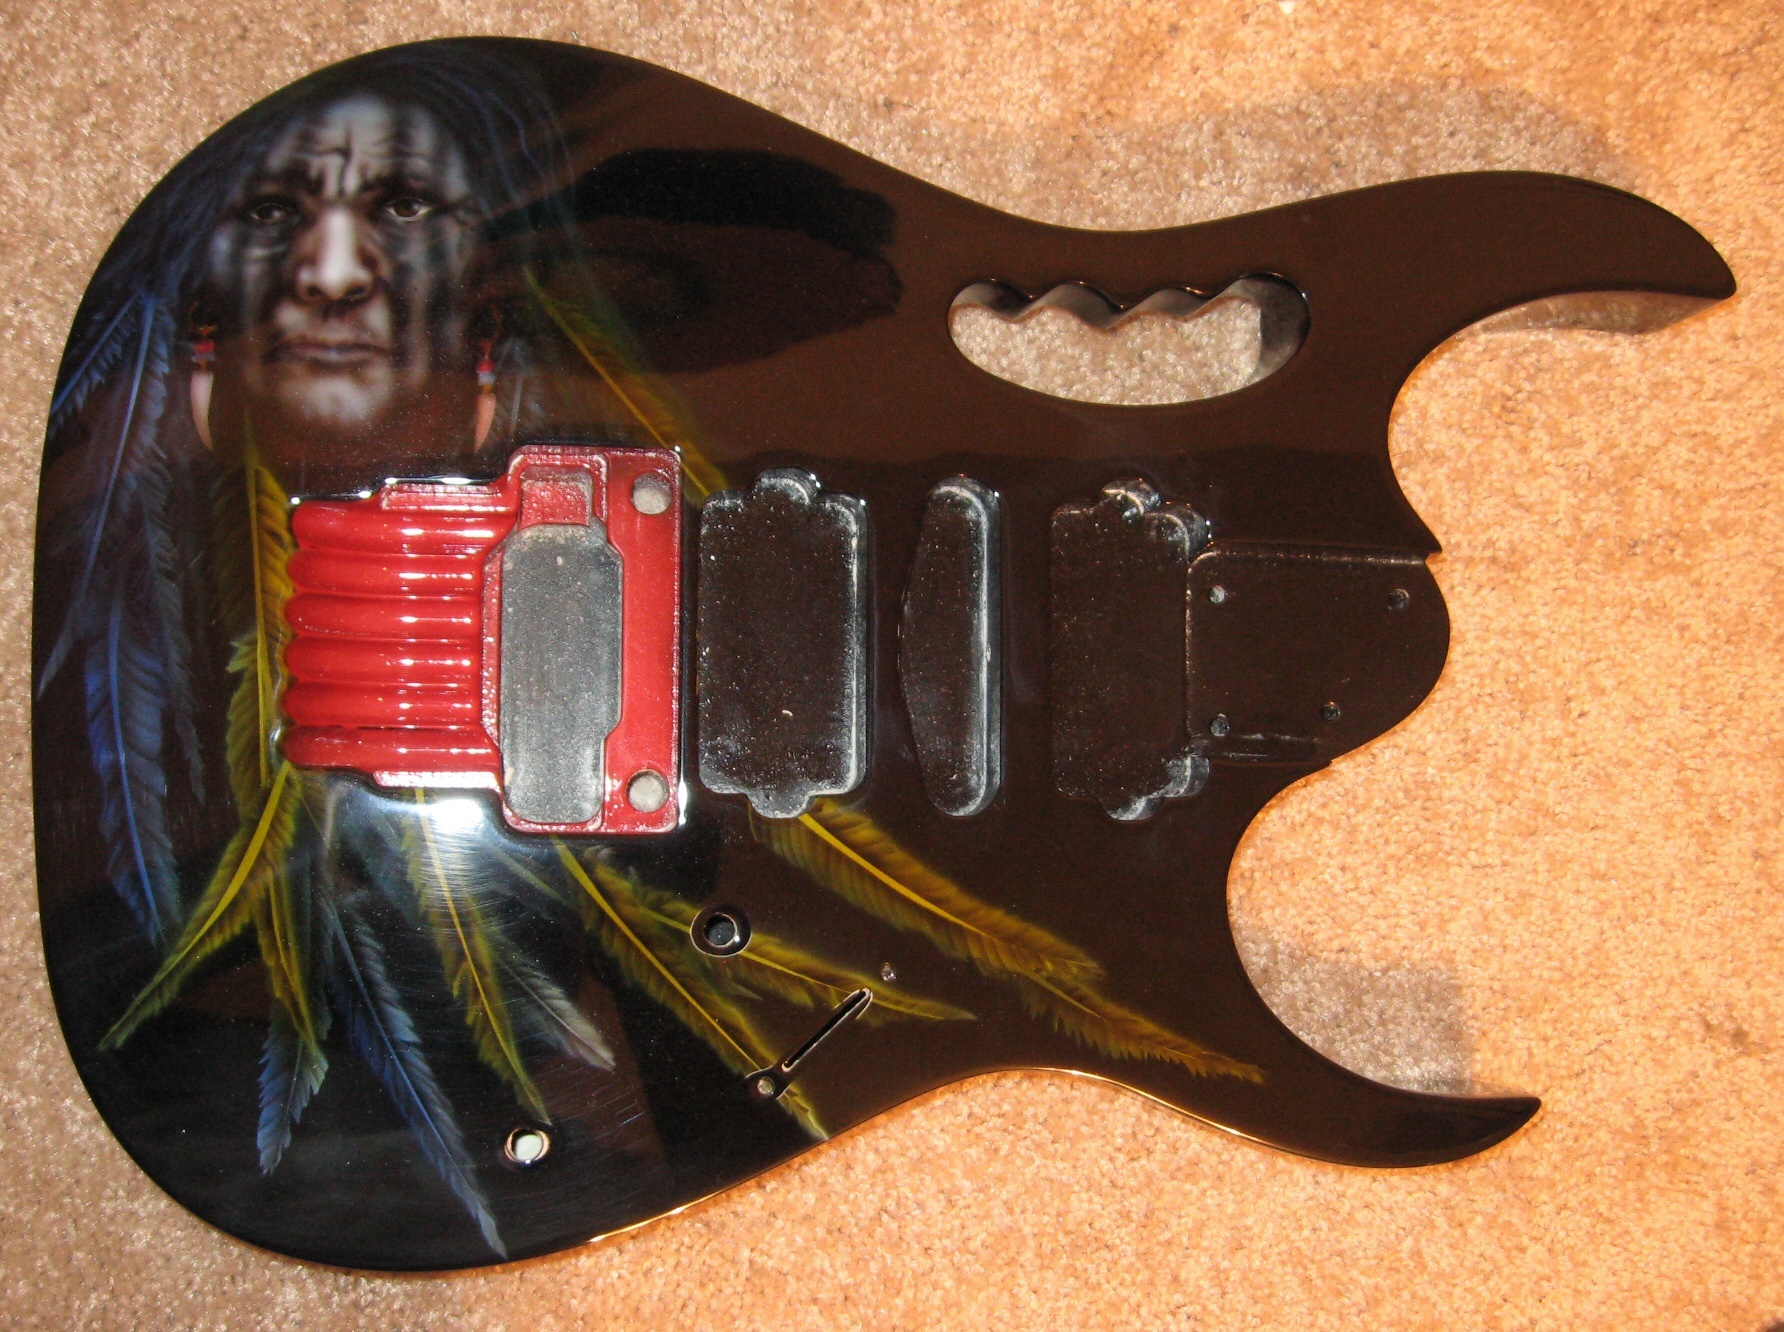 Guitar-Greg-Cassell-Ibanez-Native-American-1 (22)